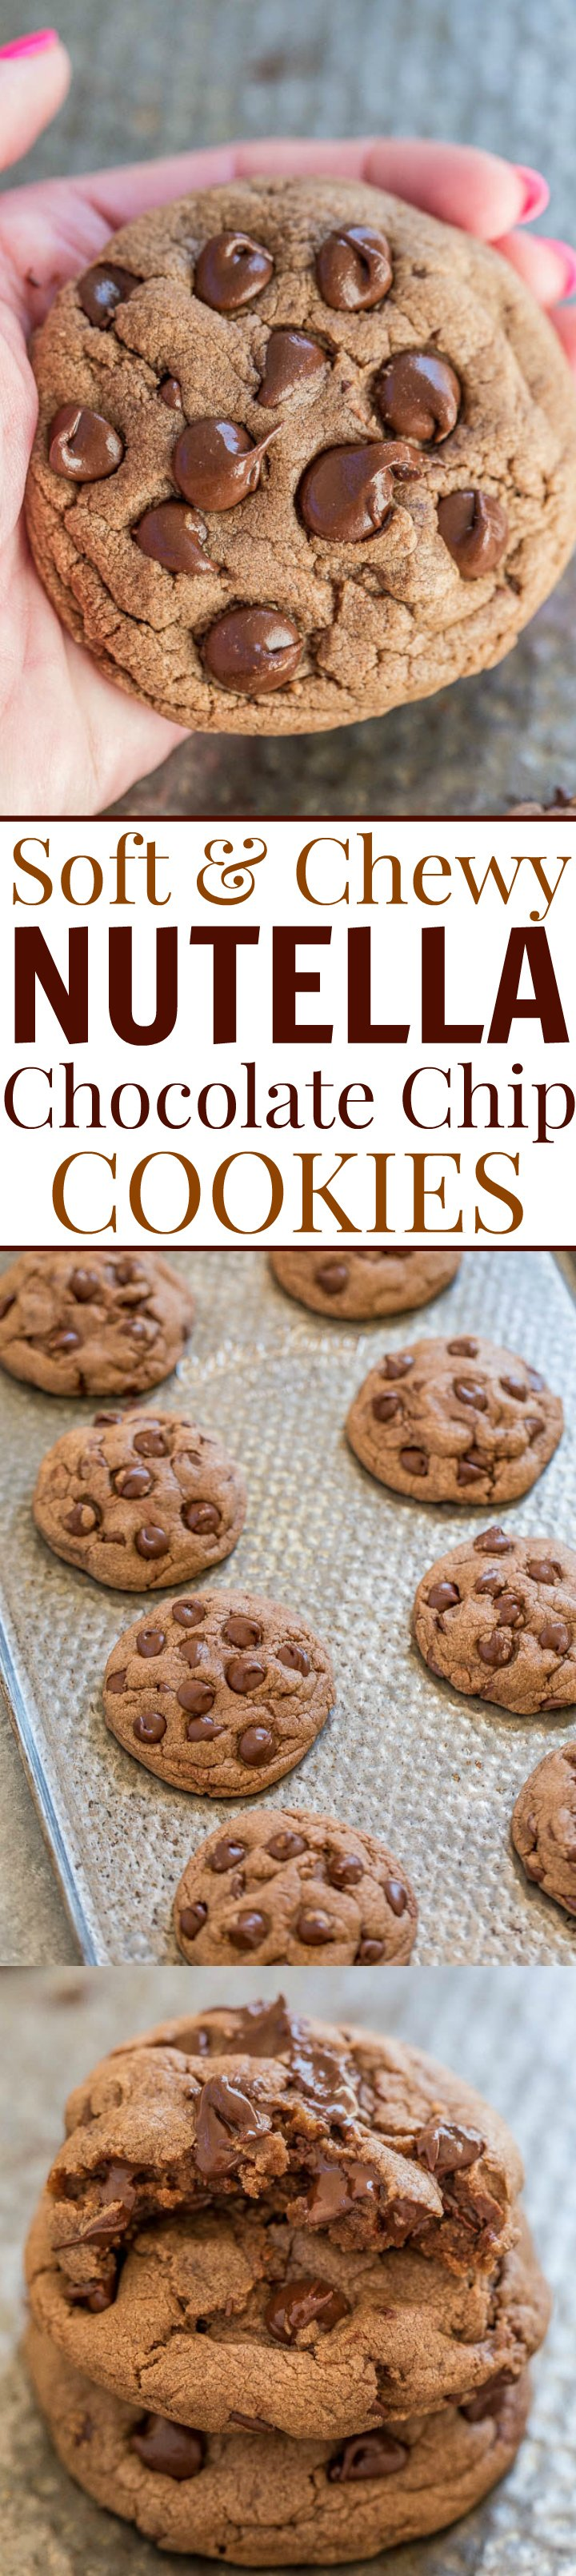 Three picture collage of nutella chocolate chip cookies with graphic title